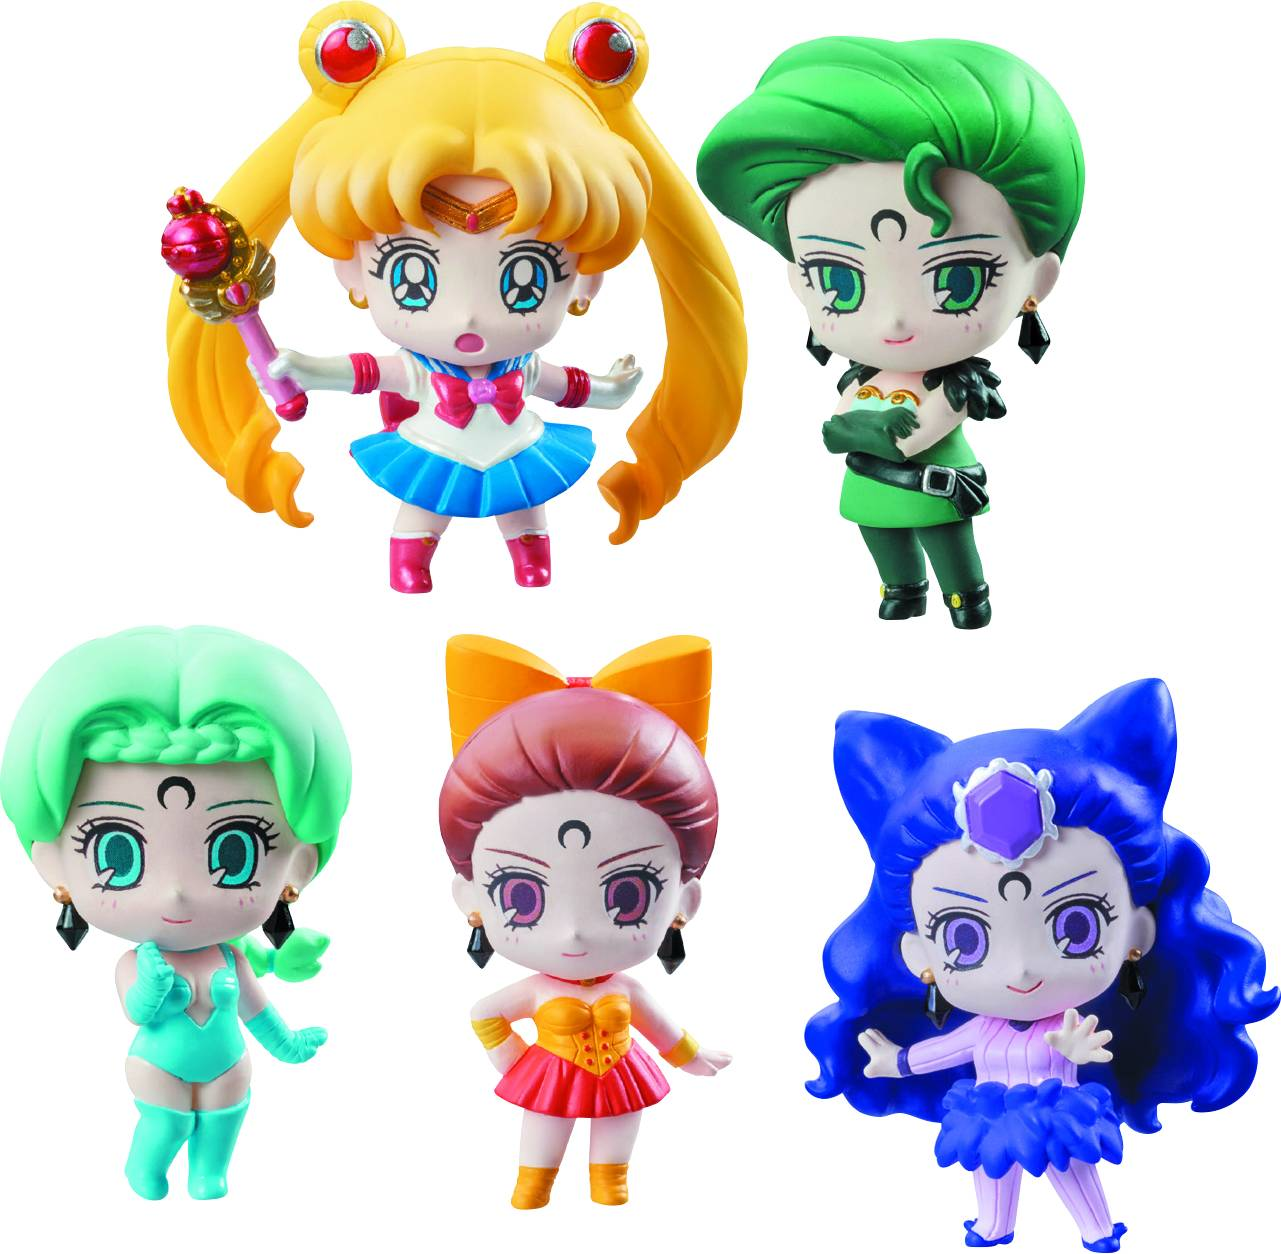 Sailor Moon: Petit Chara Ayakashi vs Sailor Moon Figures